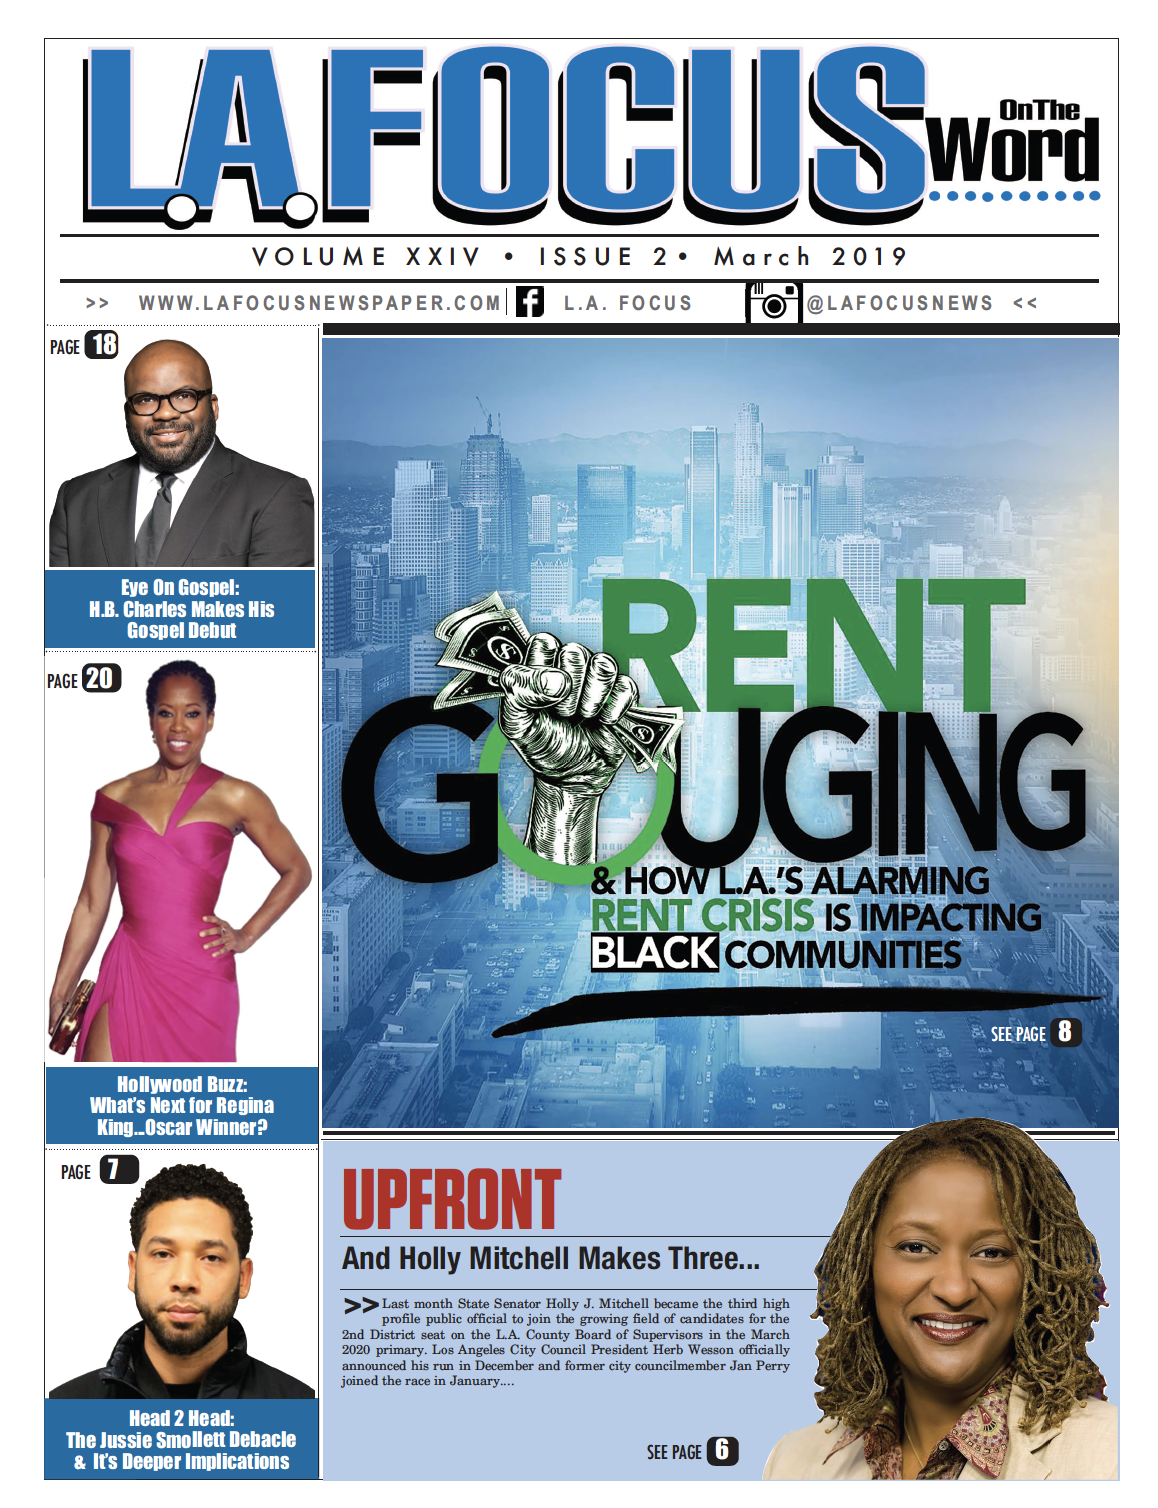 Center of Hope's PLAN4Hope quoted on pages 8-9 of the March Issue of L.A. Focus regarding the Inglewood housing situation. - Click the photo to read the publication.